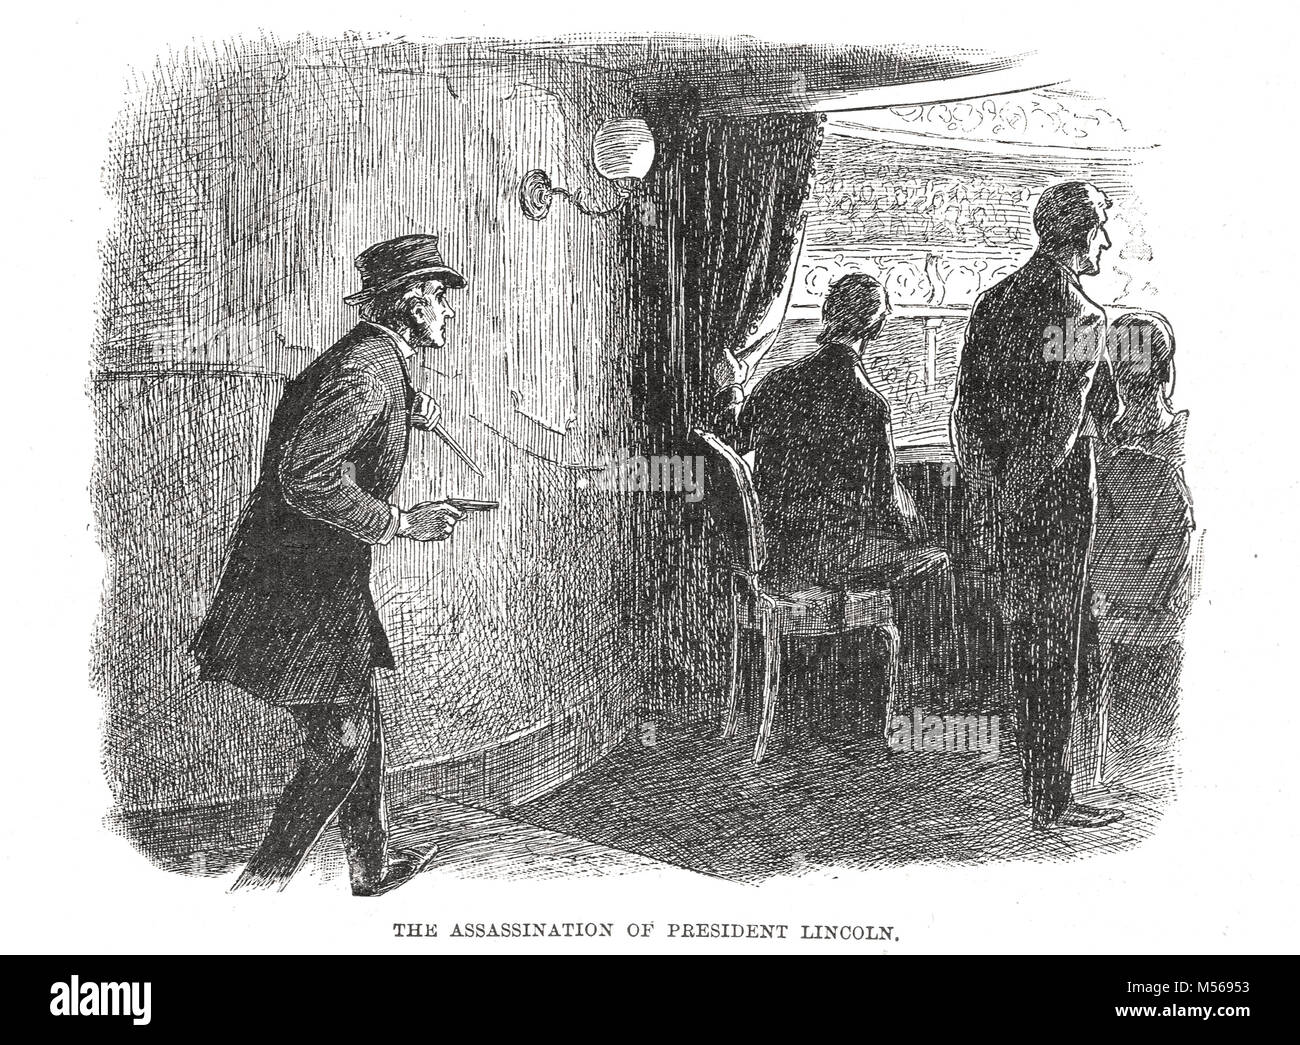 Assassination of Abraham Lincoln by actor John Wilkes Booth, 14 April 1865 at Ford's Theatre, Washington D.C - Stock Image